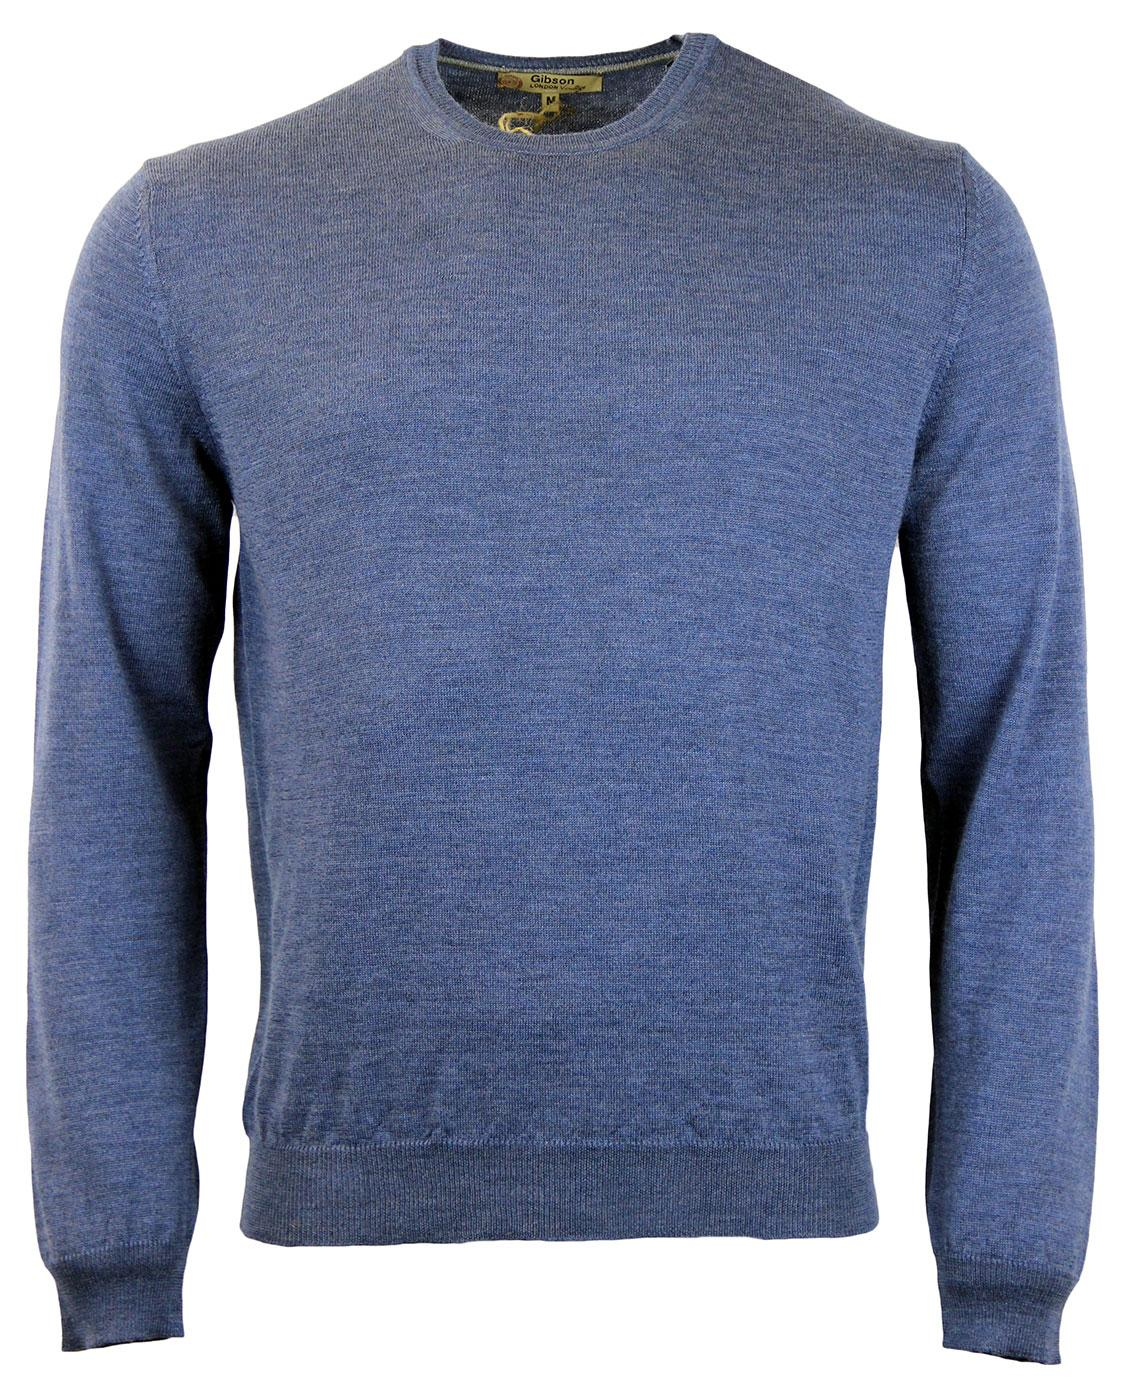 GIBSON LONDON Retro Mod Merino Crew Neck Jumper LB